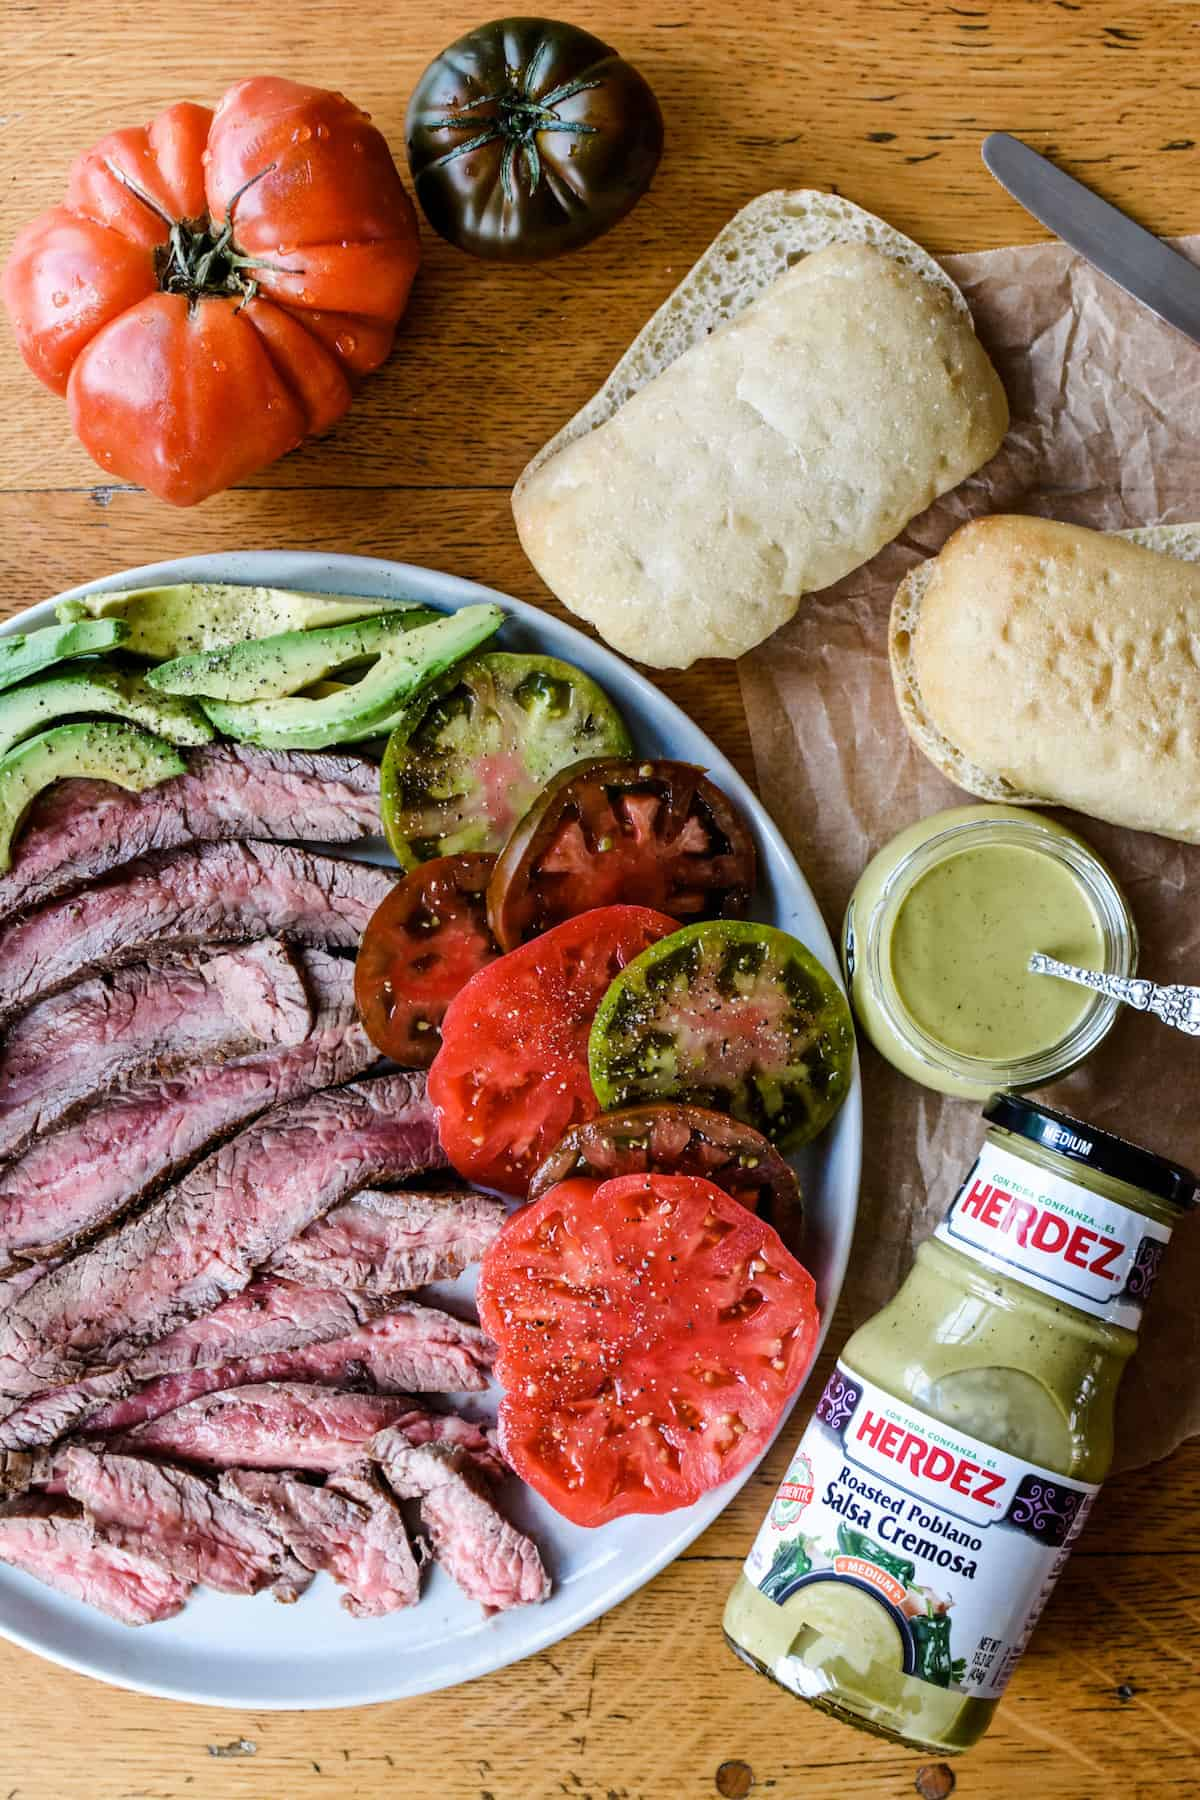 A plate of sliced steak, avocado and tomato slices sitting on a wooden table. Heirloom tomatoes sitting on the side along with rolls cut in half.